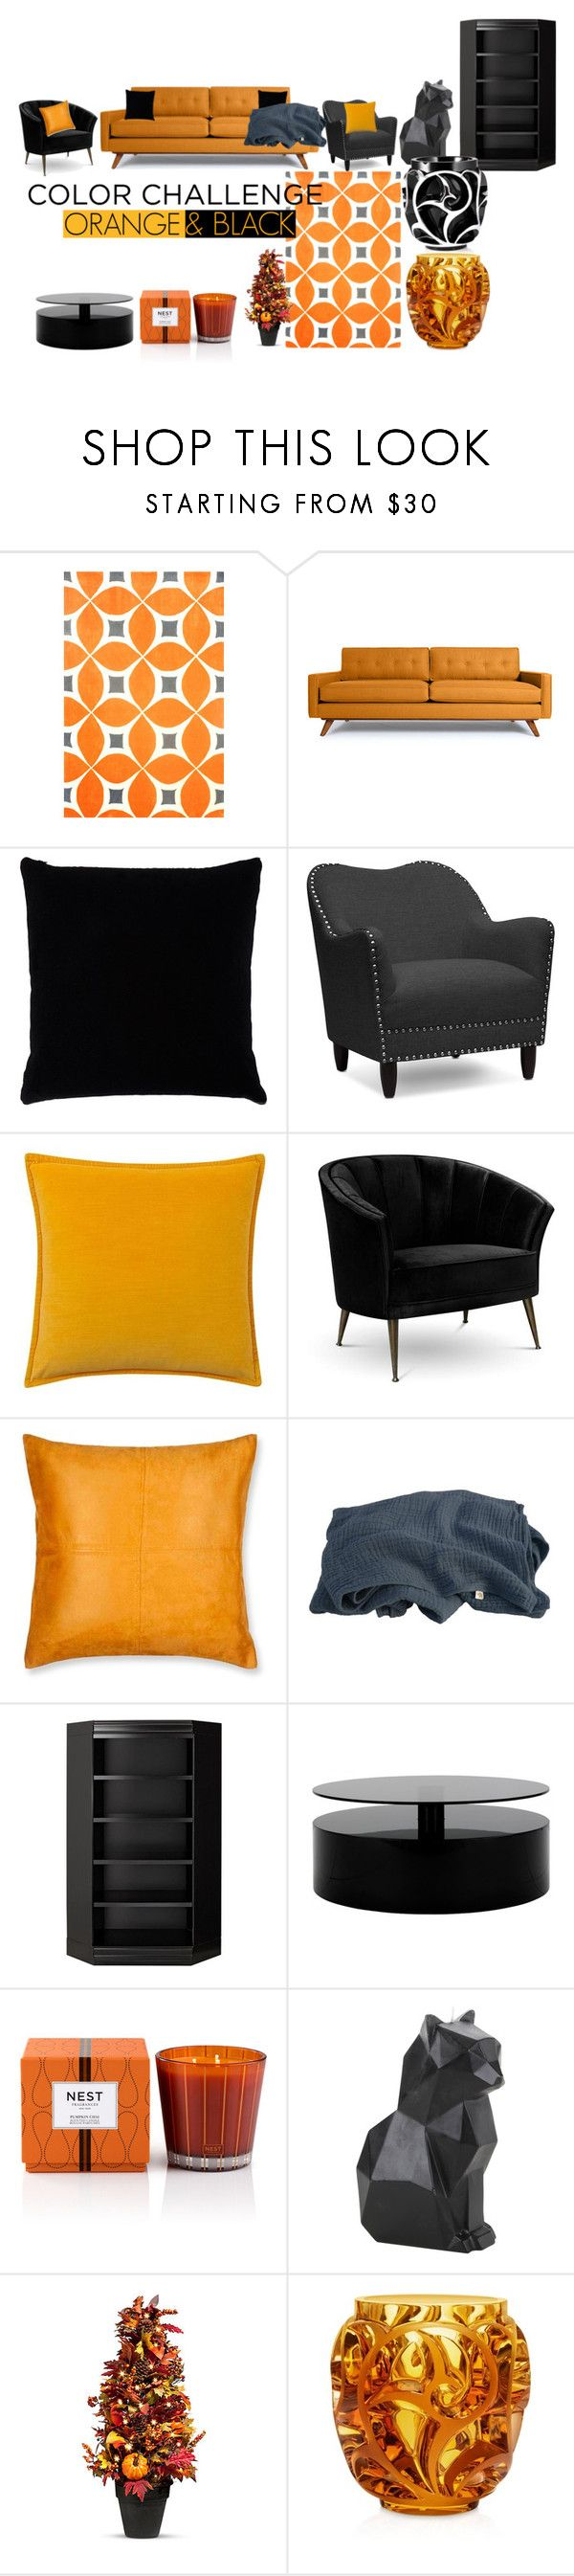 """Modern"" by elisabetta-negro ❤ liked on Polyvore featuring interior, interiors, interior design, home, home decor, interior decorating, Thrive, Kevin O'Brien, Baxton Studio and Pottery Barn"